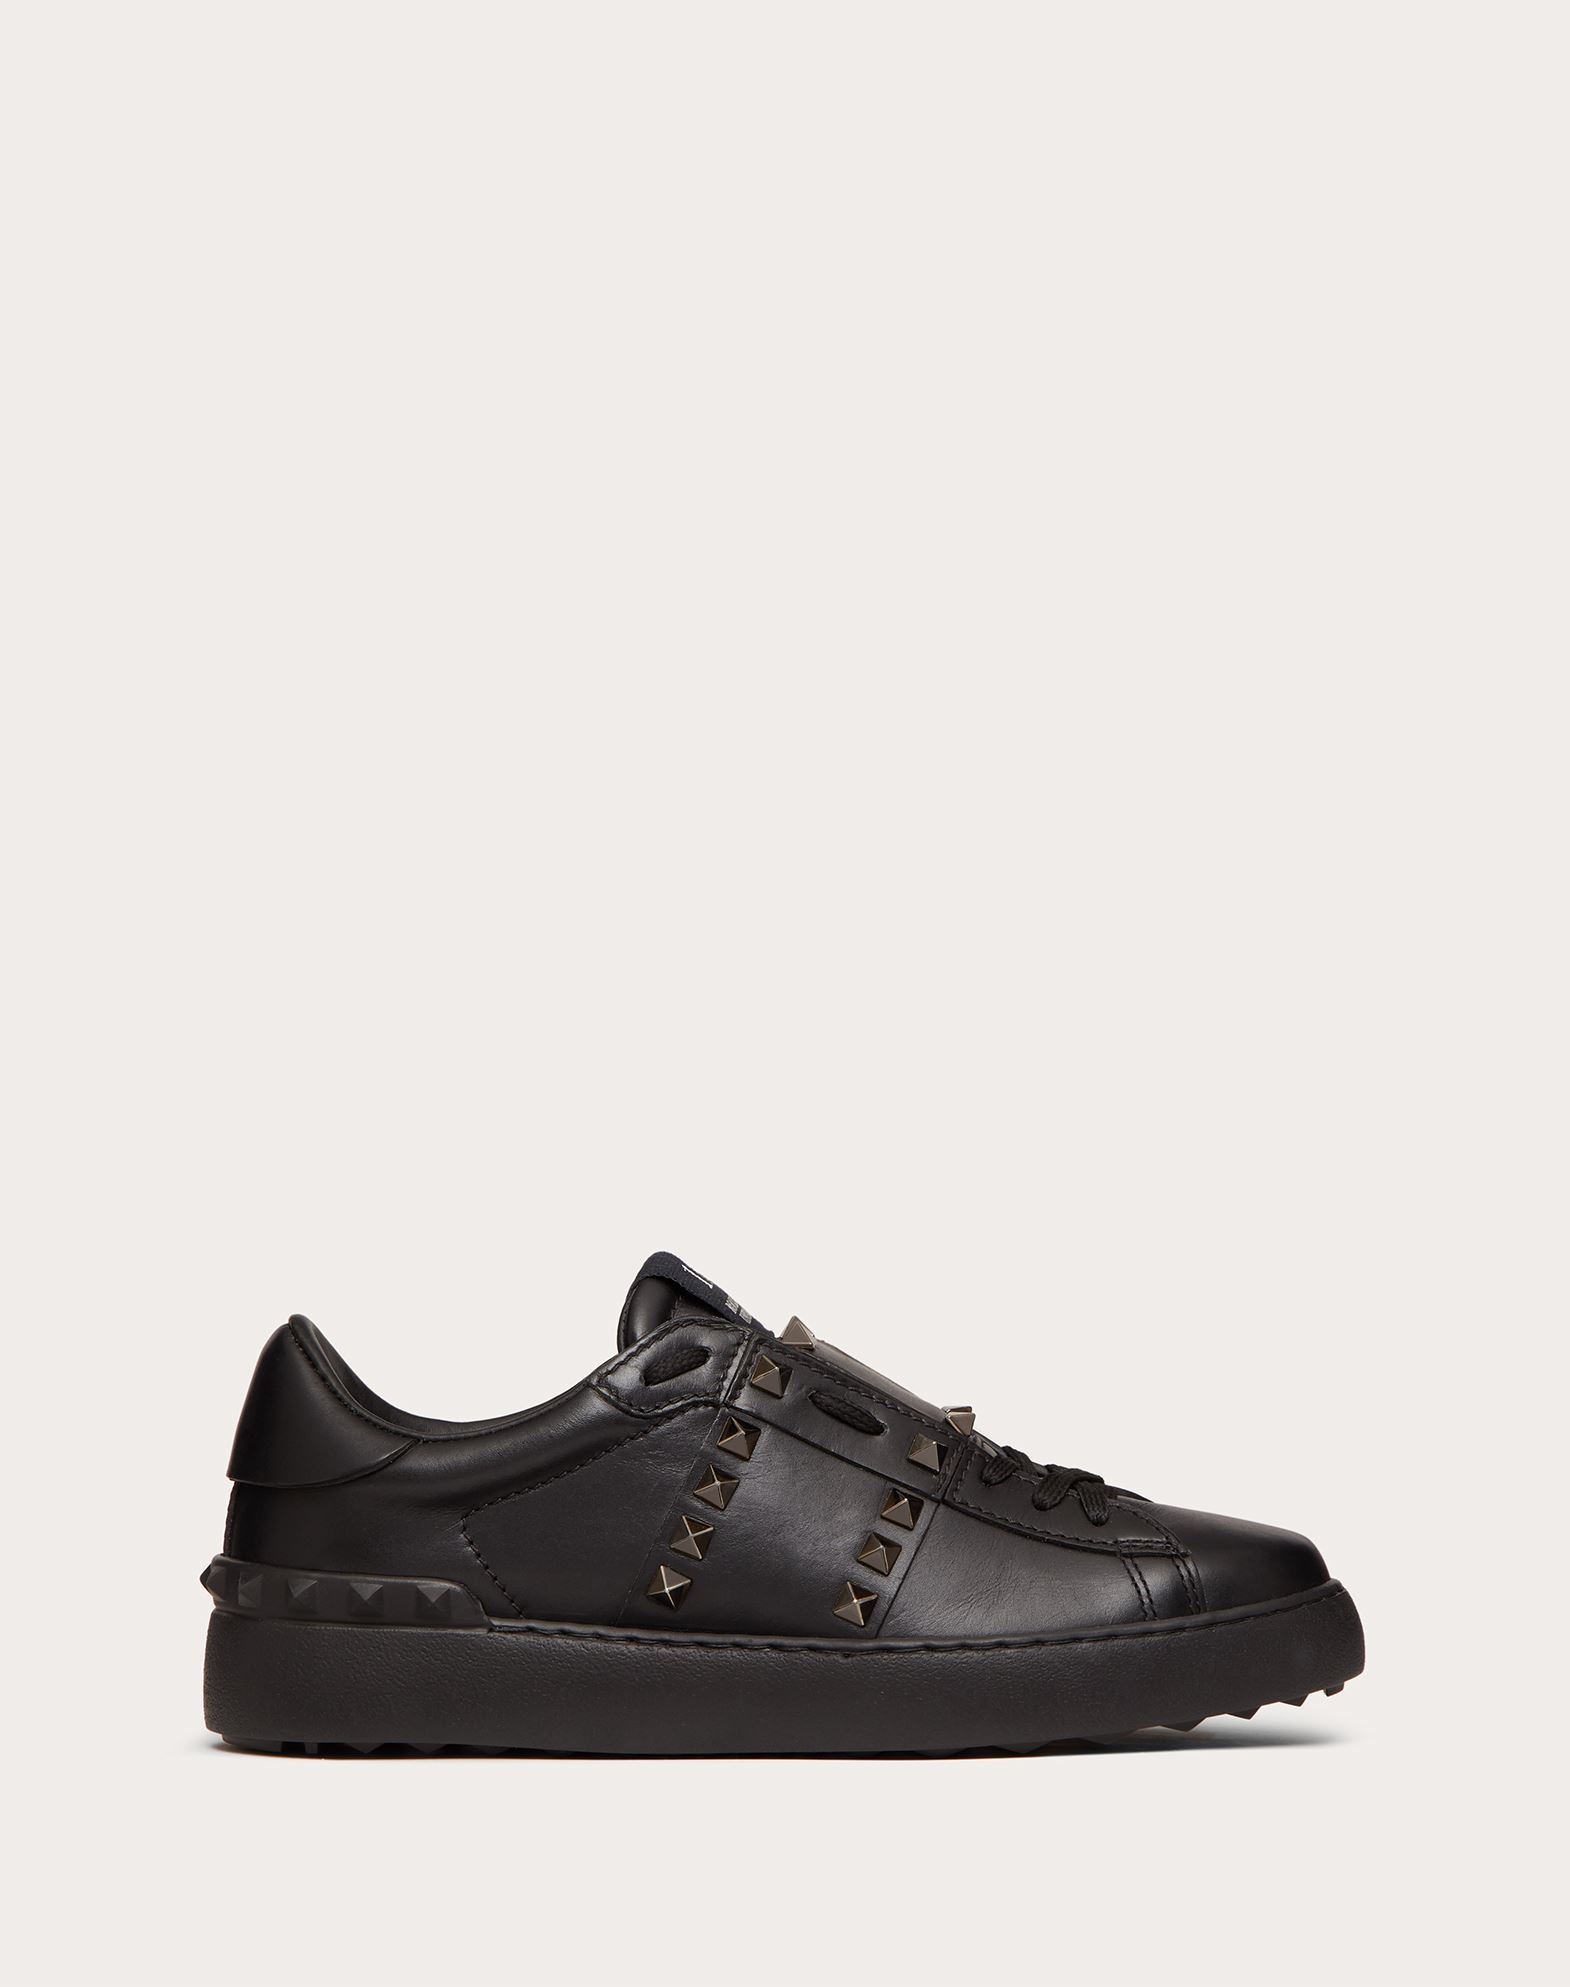 VALENTINO GARAVANI Rockstud Untitled Noir Sneaker LOW-TOP SNEAKERS D f